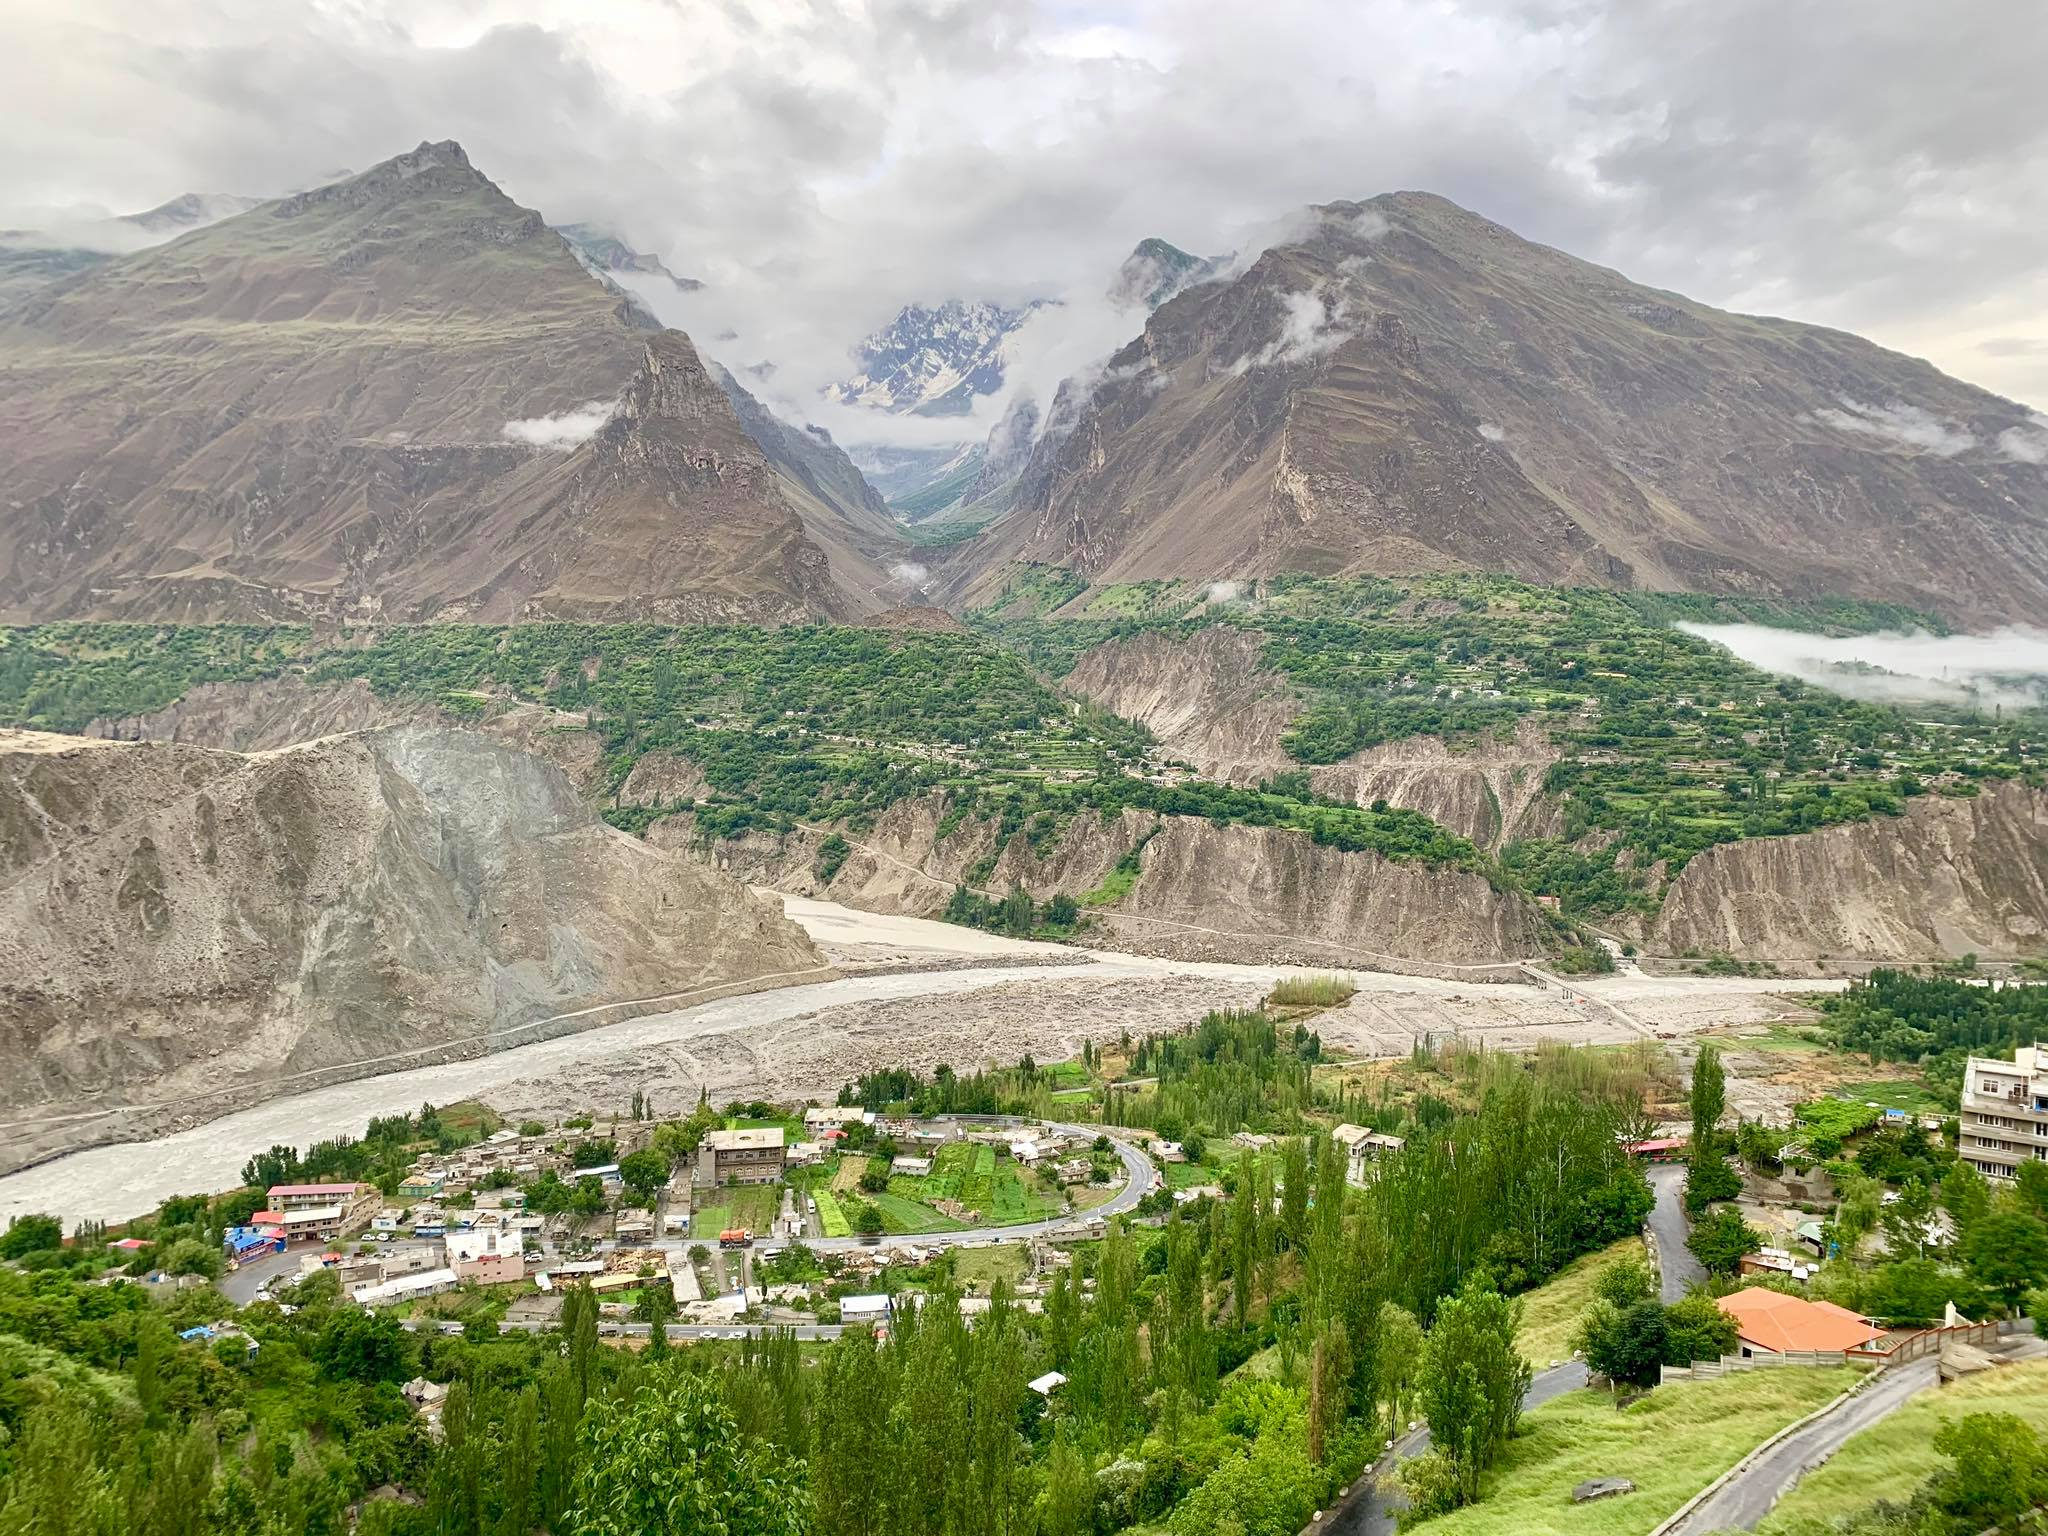 Kach Solo Travels in 2019 Driving in North Hunza Valley to Khunjerab Pass9.jpg